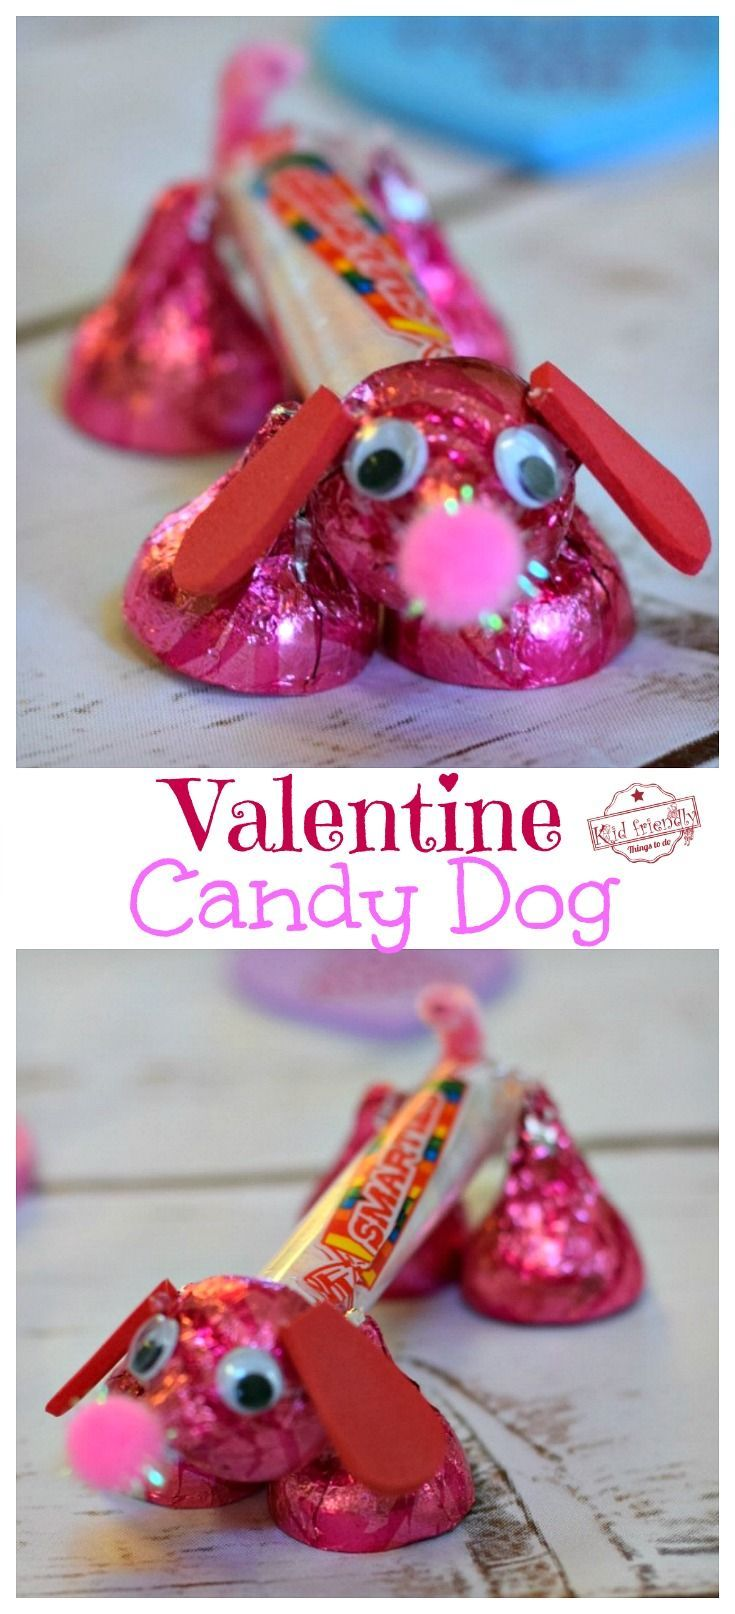 Make a Candy Dog for a Fun Kid's Valentine's Day Craft and Treat | Kid Friendly Things To Do